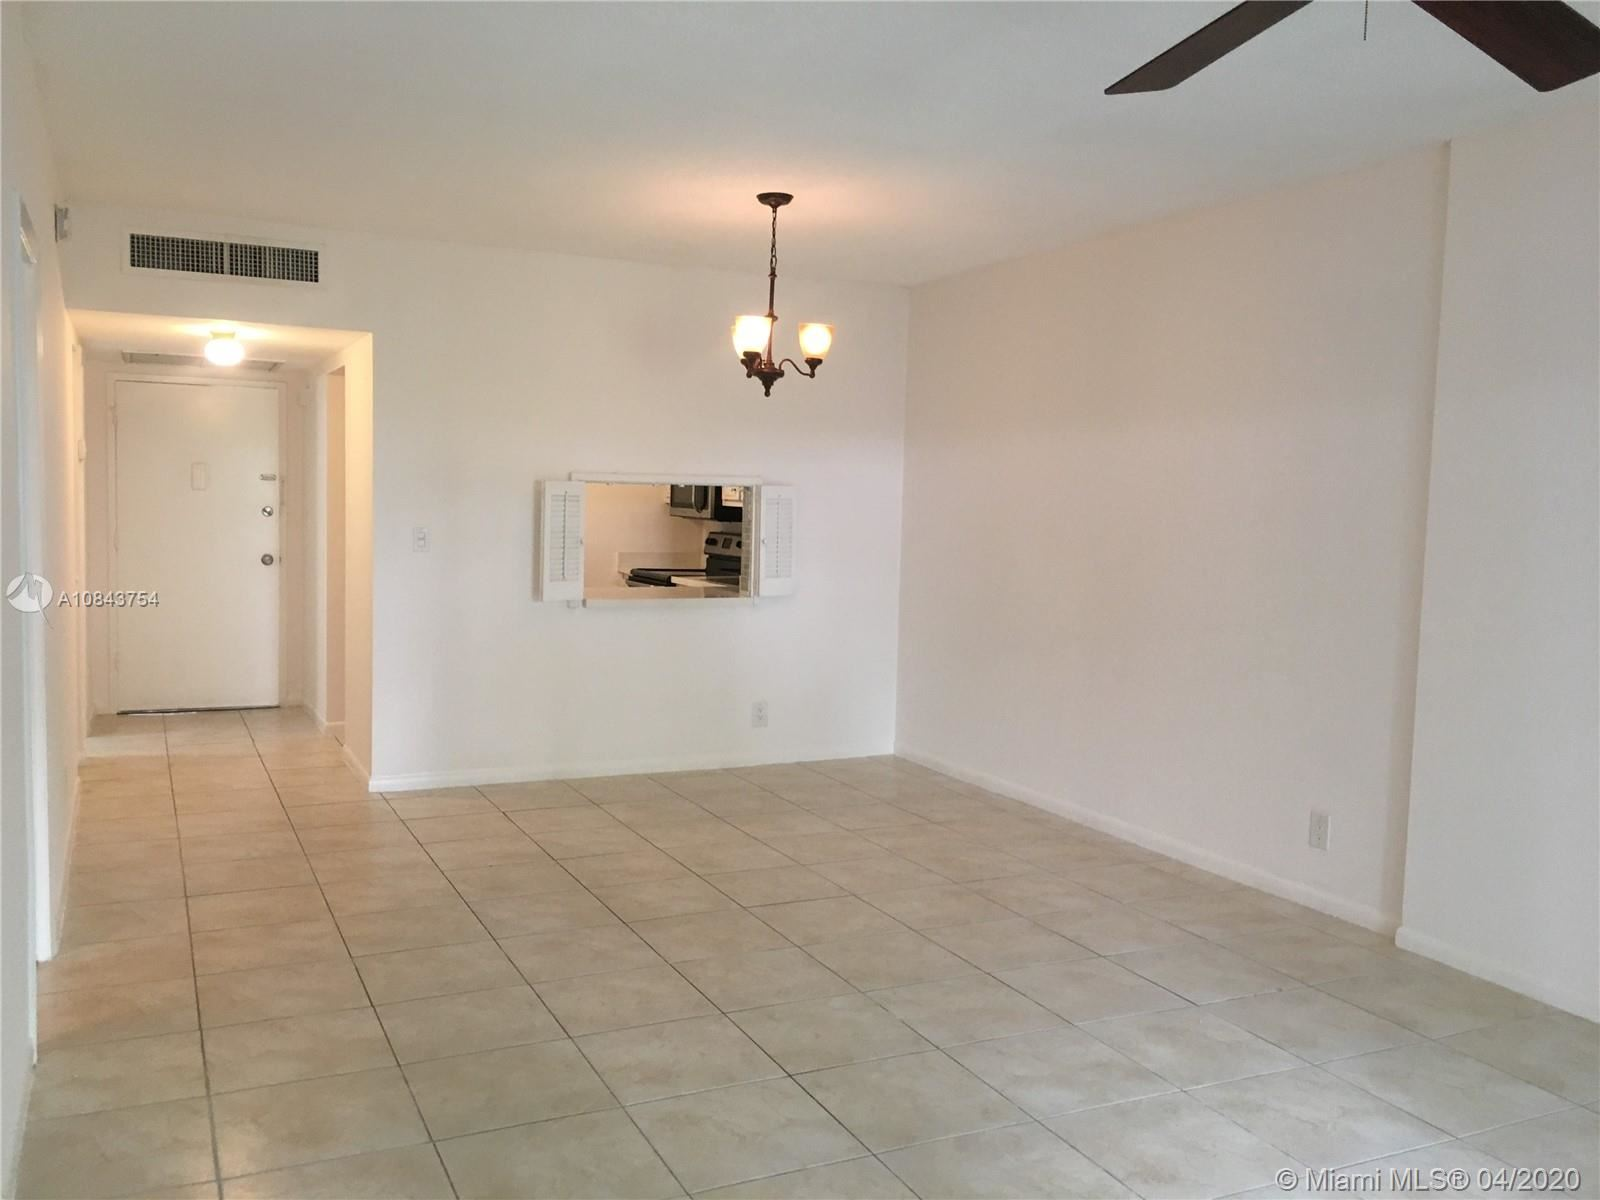 Photo of 100 Edgewater Dr #136, Coral Gables, FL 33133 (MLS # A10843754)